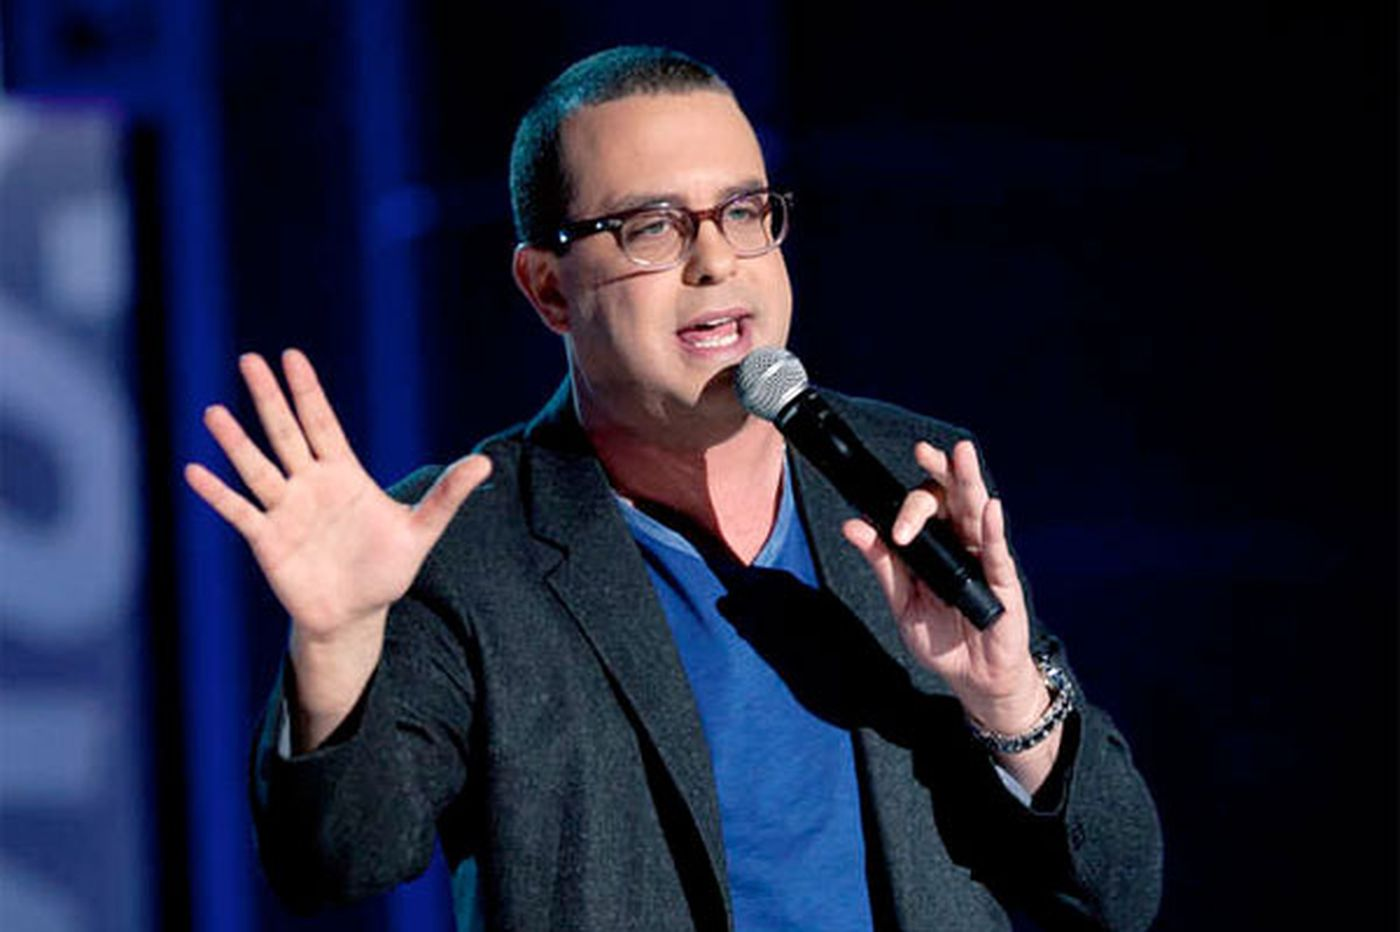 Local stand-up comedian gets TV showcase Friday